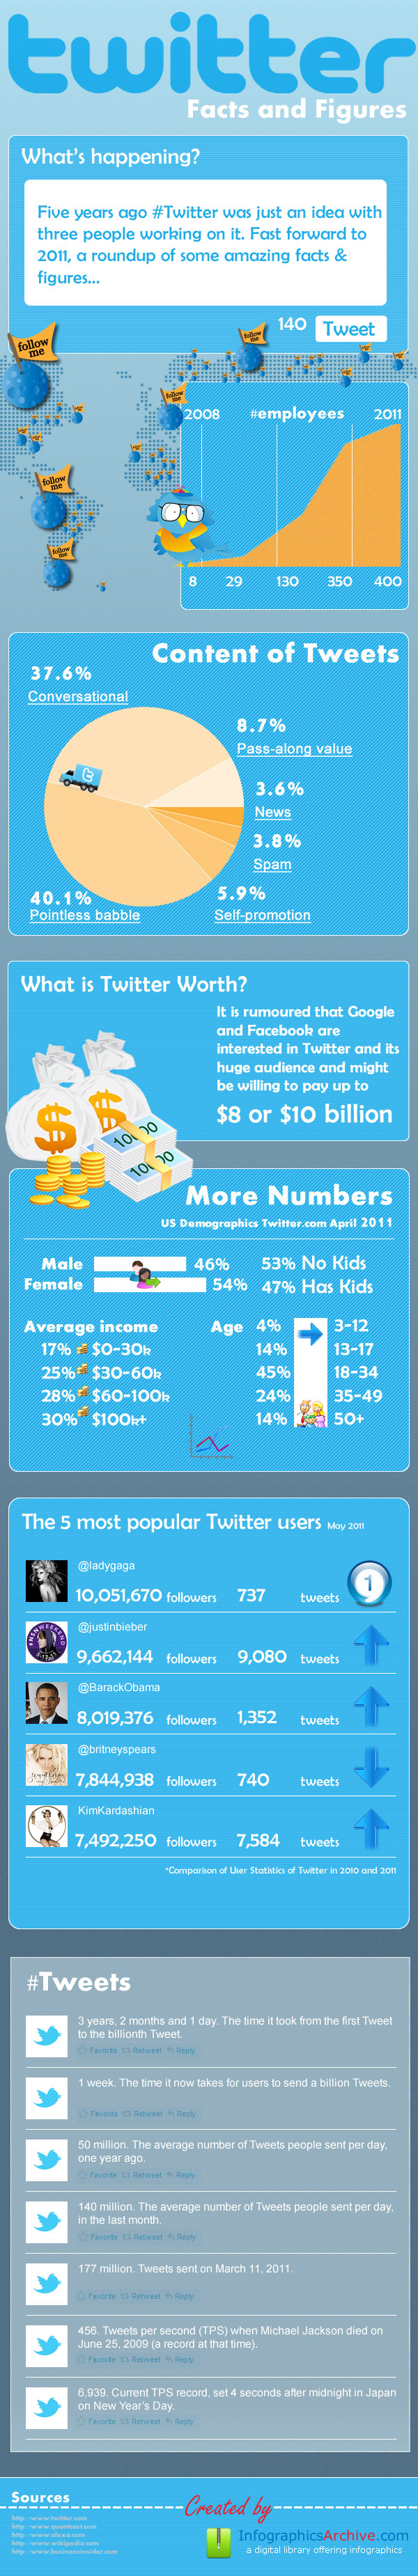 infographic-on-social-media-16